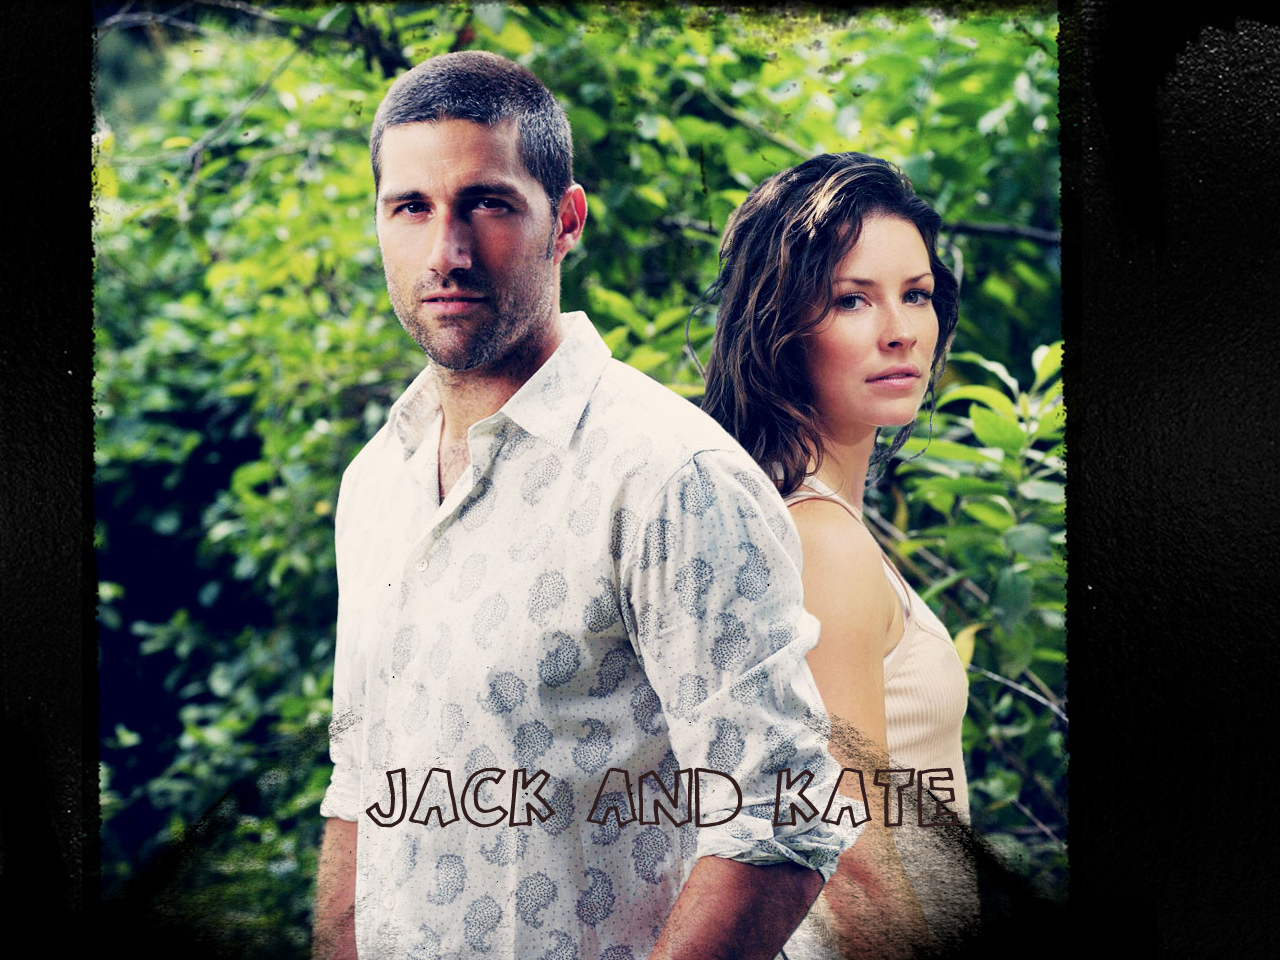 jack and kate lost relationship with god